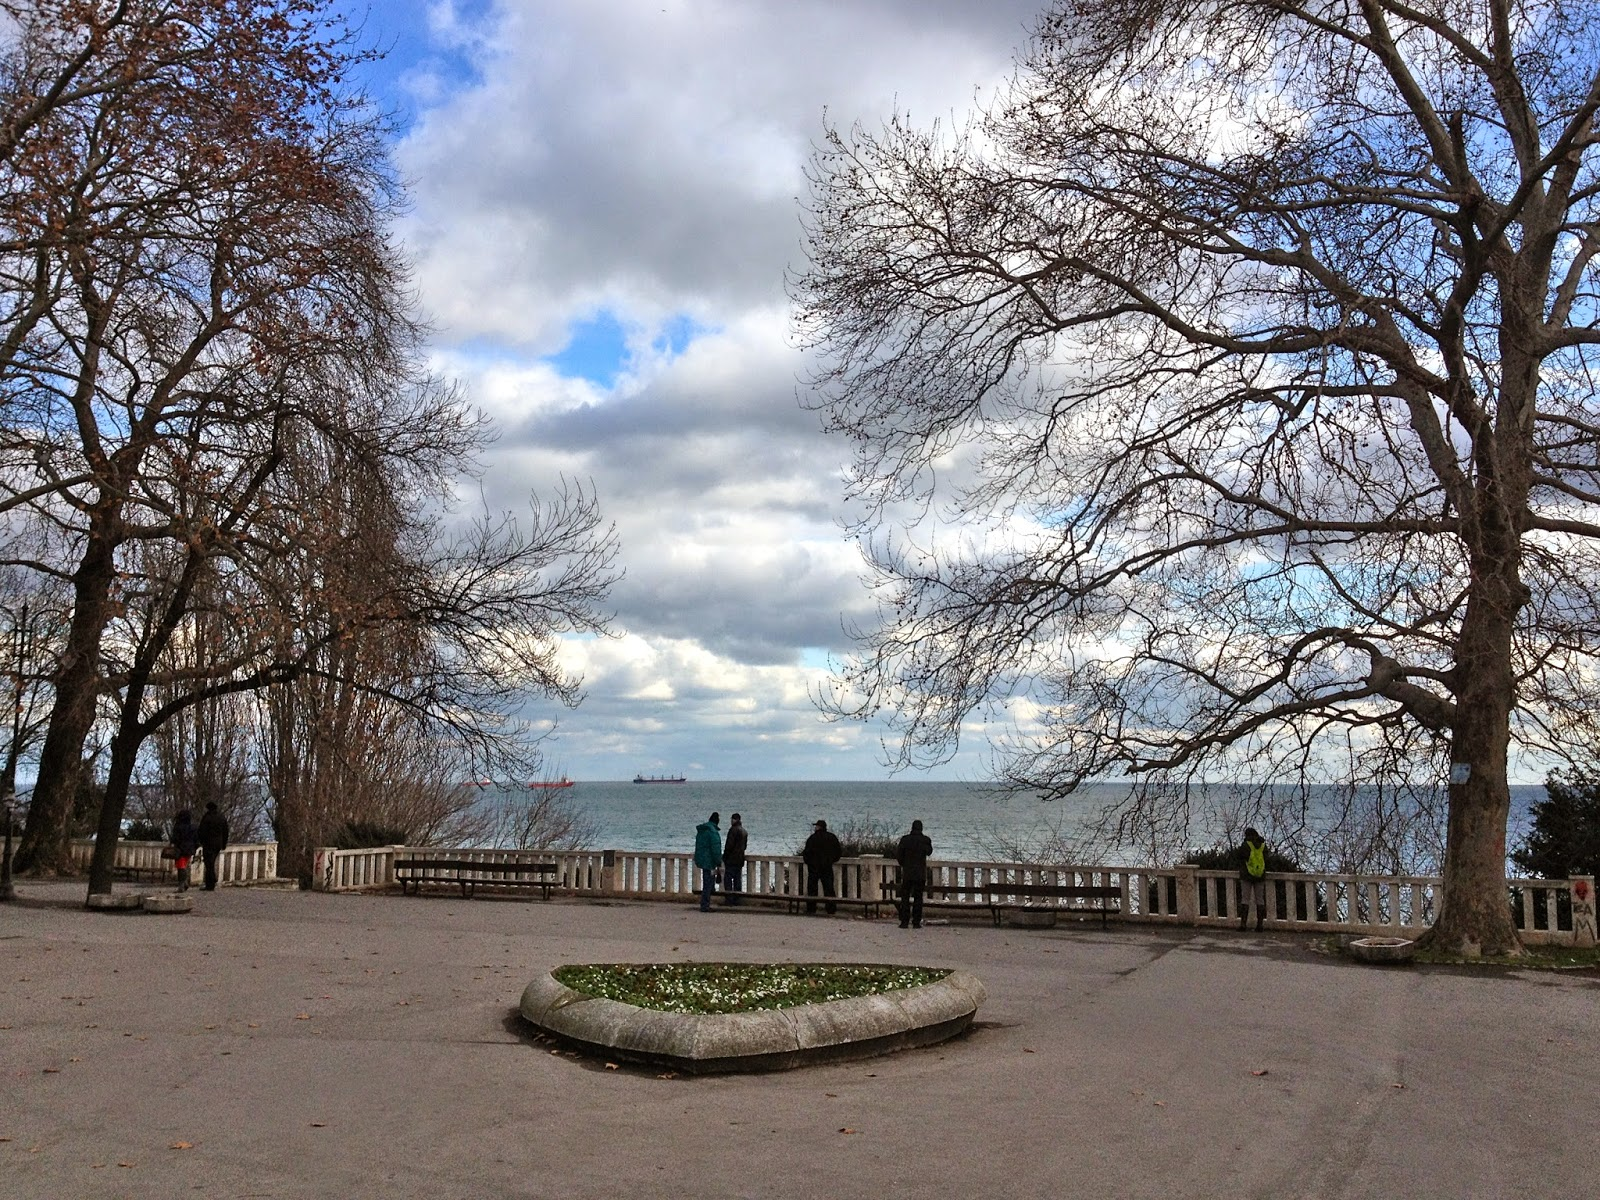 Photo of the sea garden in Varna, Bulgaria.